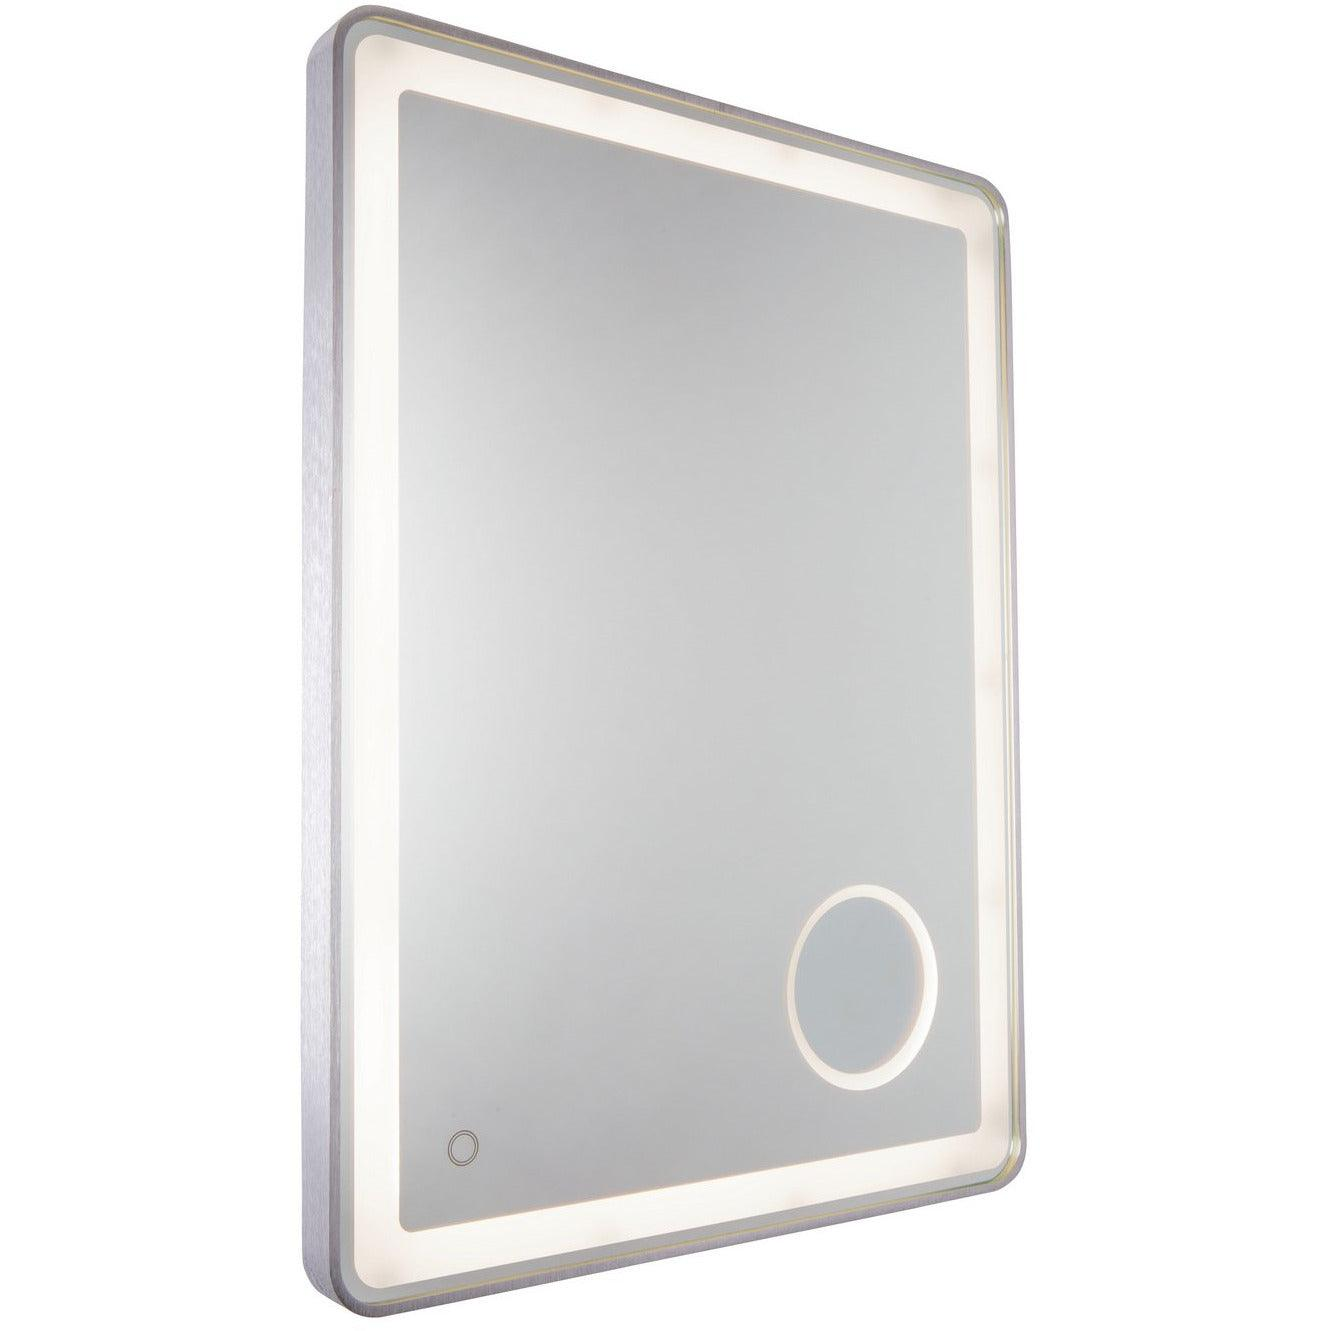 Artcraft Lighting - AM317 - LED Mirror - Reflections - Brushed Grey